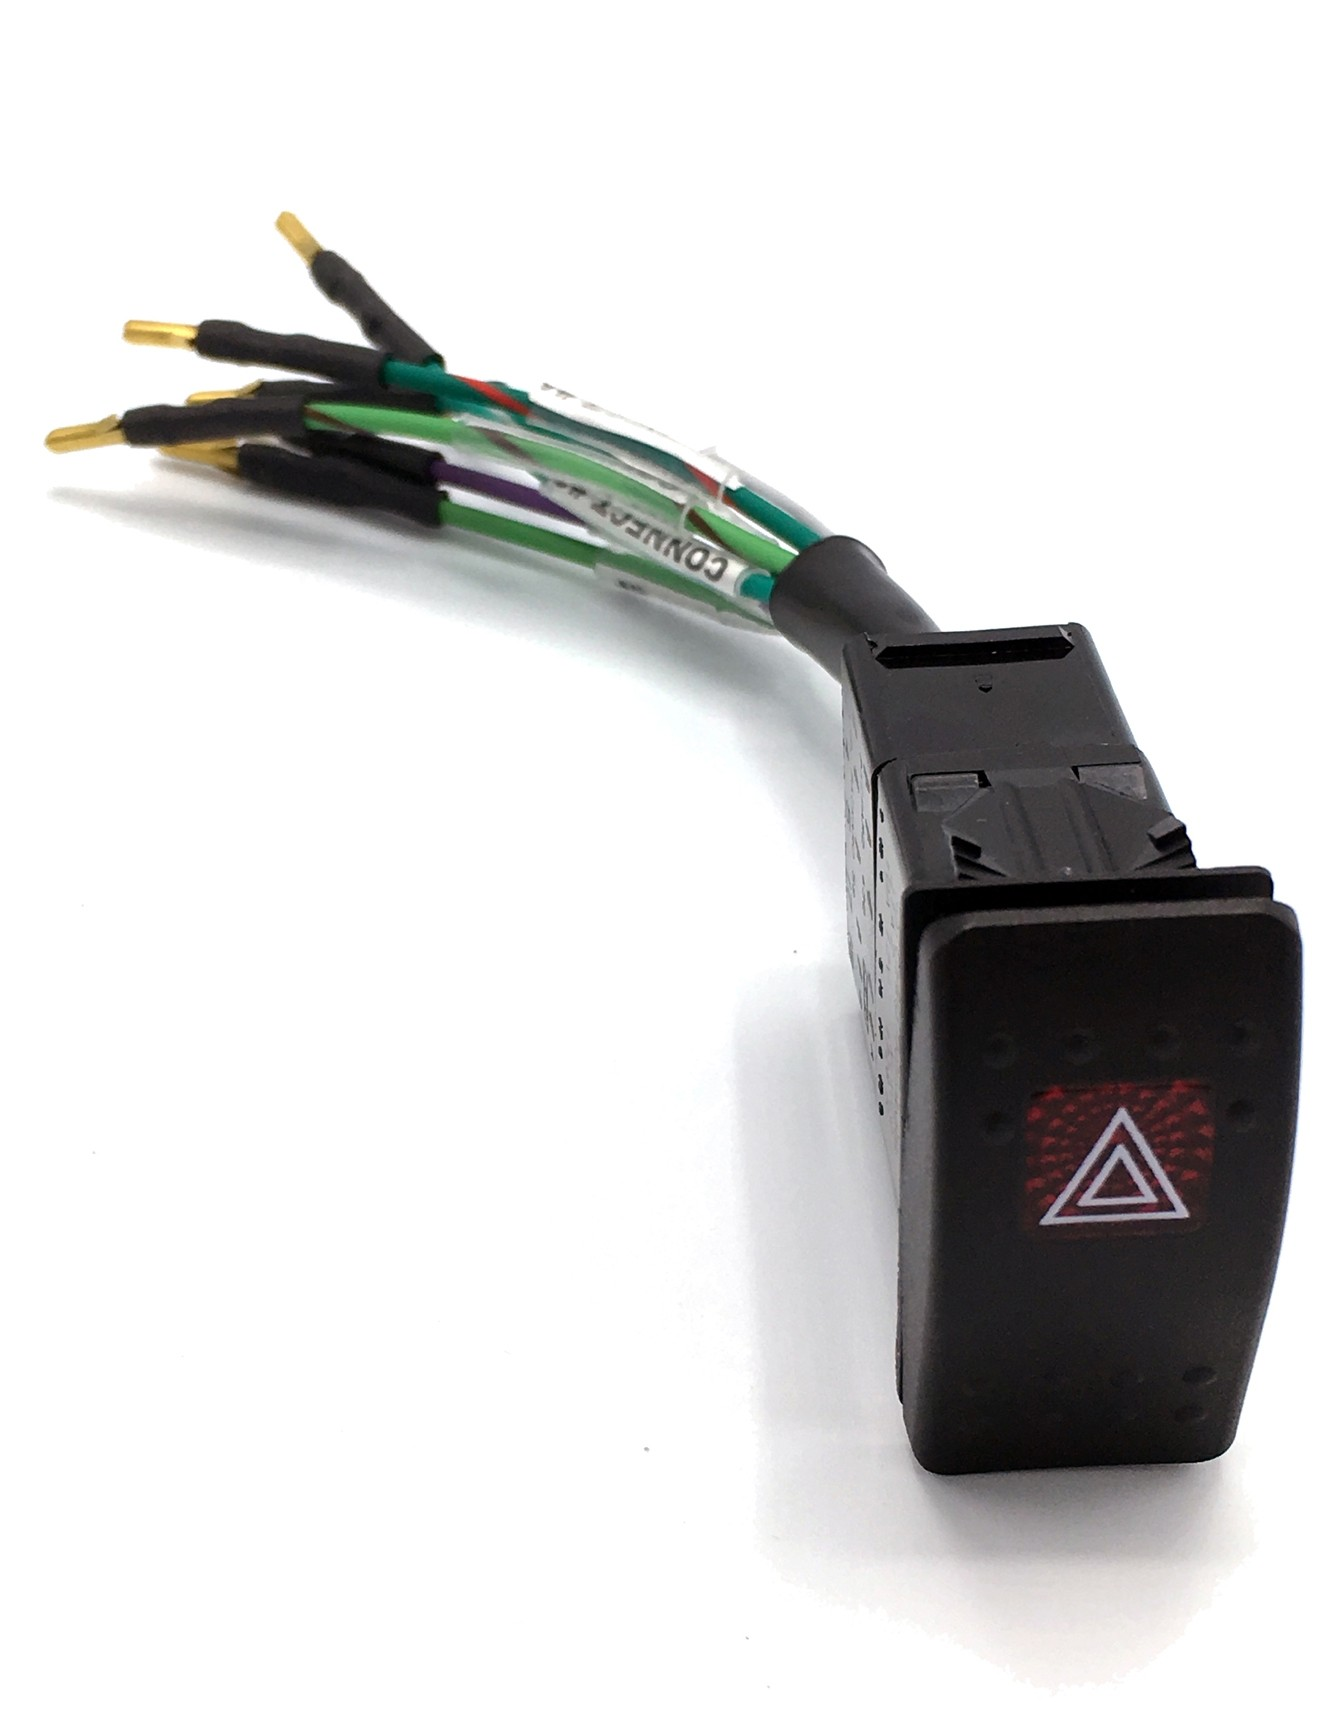 hazard switch wiring harness (*includes* carling hazard switchhazard switch wiring harness (*includes* carling hazard switch \u0026 multiplug)